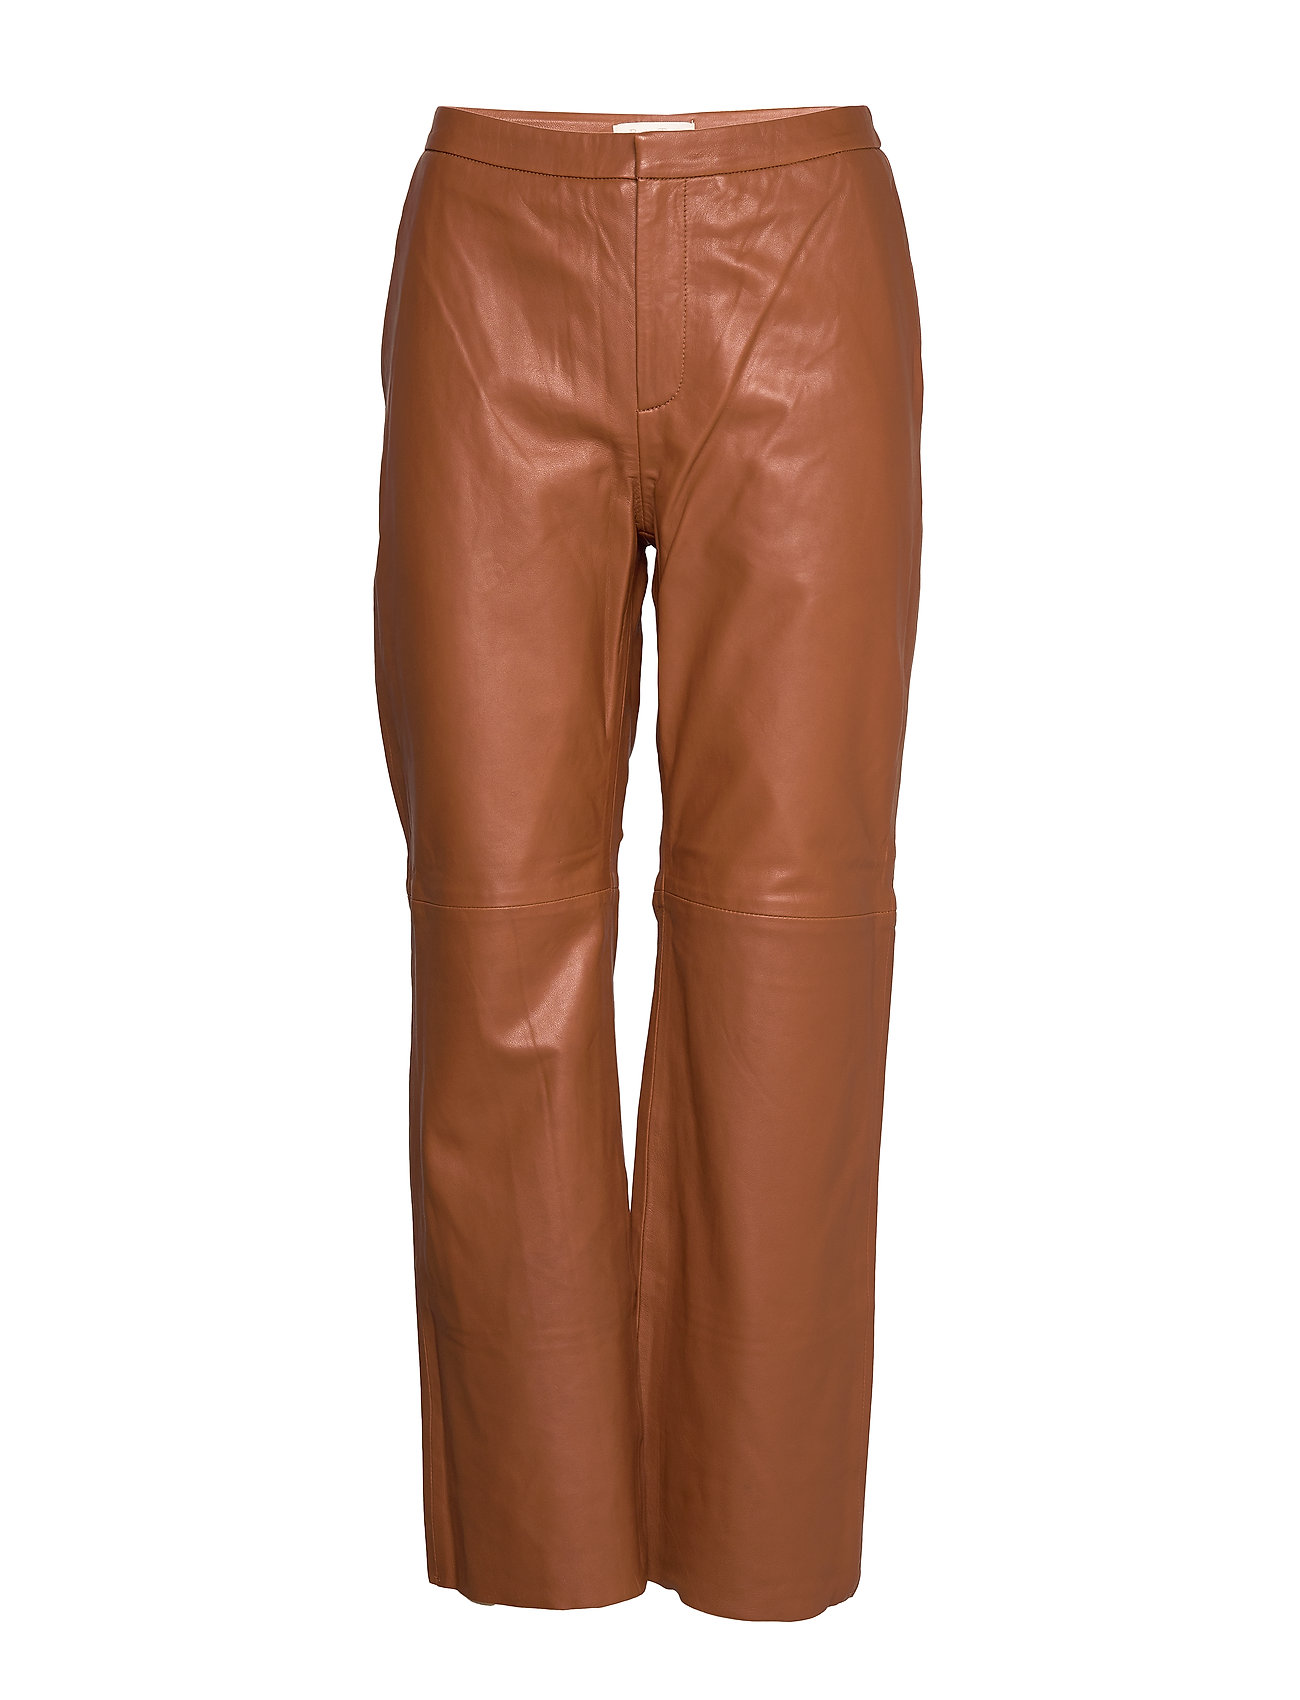 Image of Marvella Pa Leather Leggings/Bukser Brun Part Two (3288145999)